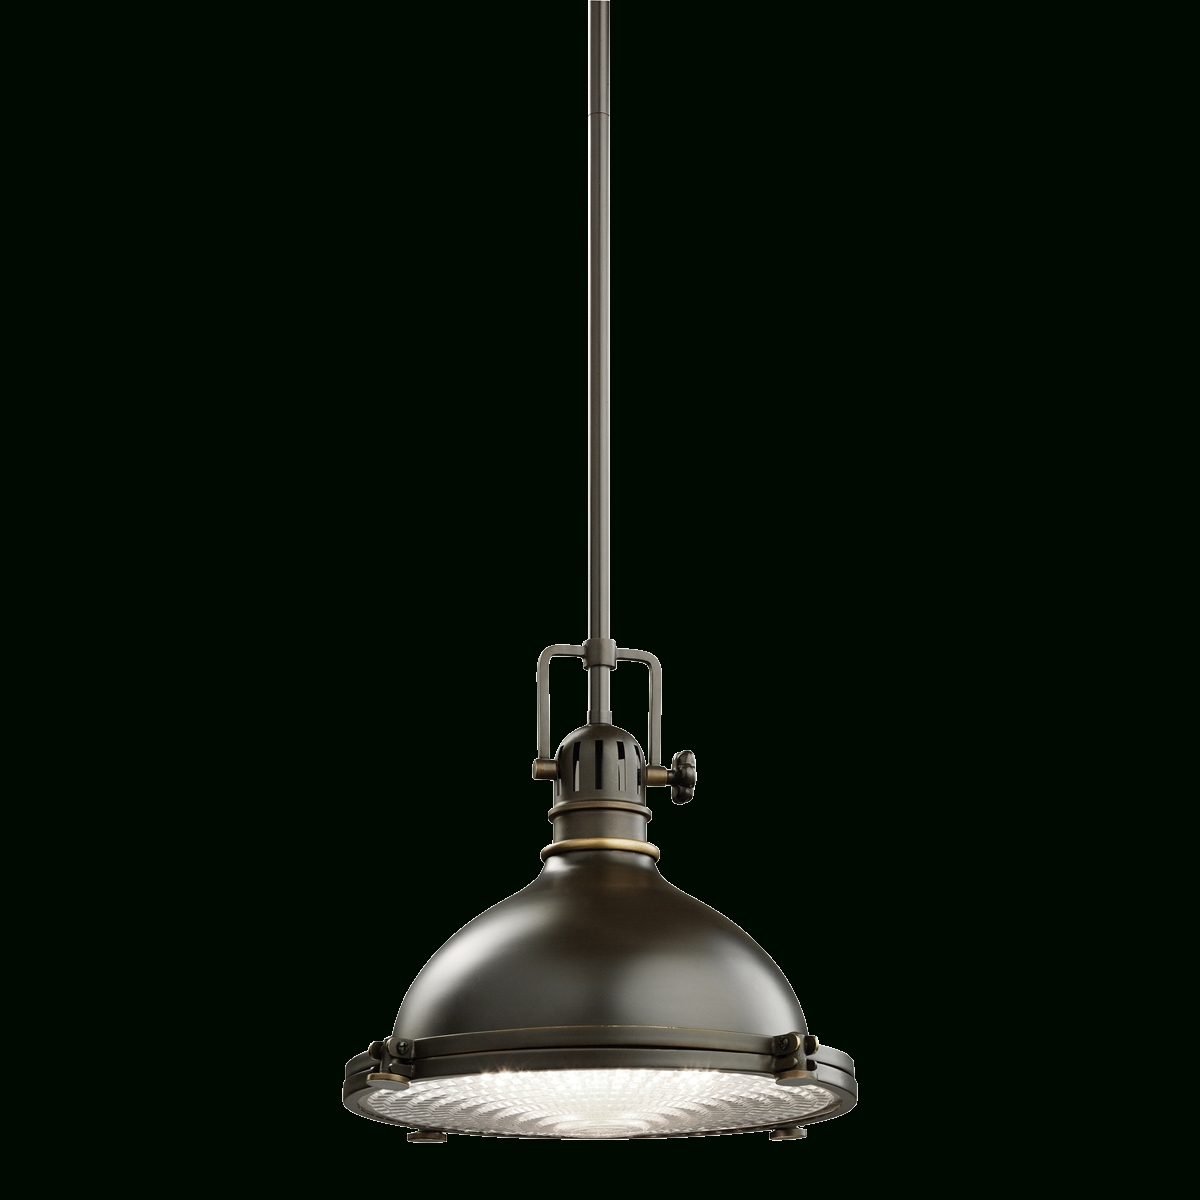 Kichler 1 Light Industrial Pendant (2665Pn)| Polished Nickel Lighting intended for Industrial Looking Lights Fixtures (Image 13 of 15)